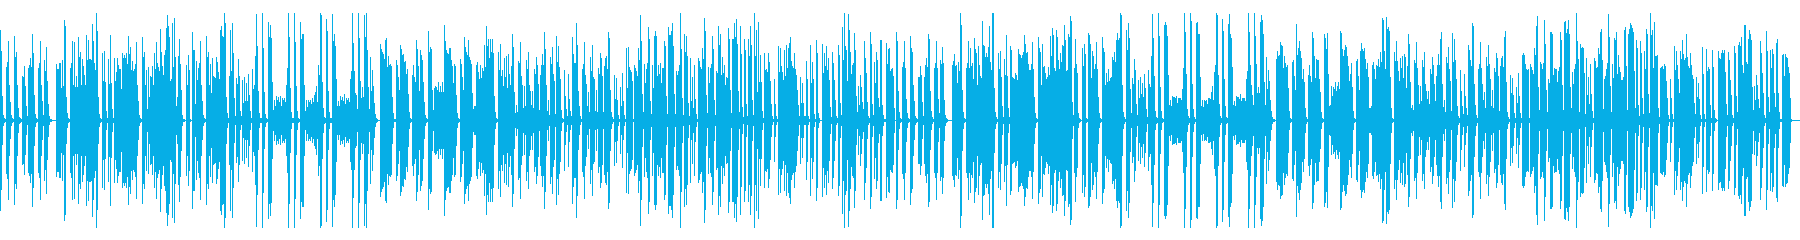 Slow and simple comical song's reproduced waveform